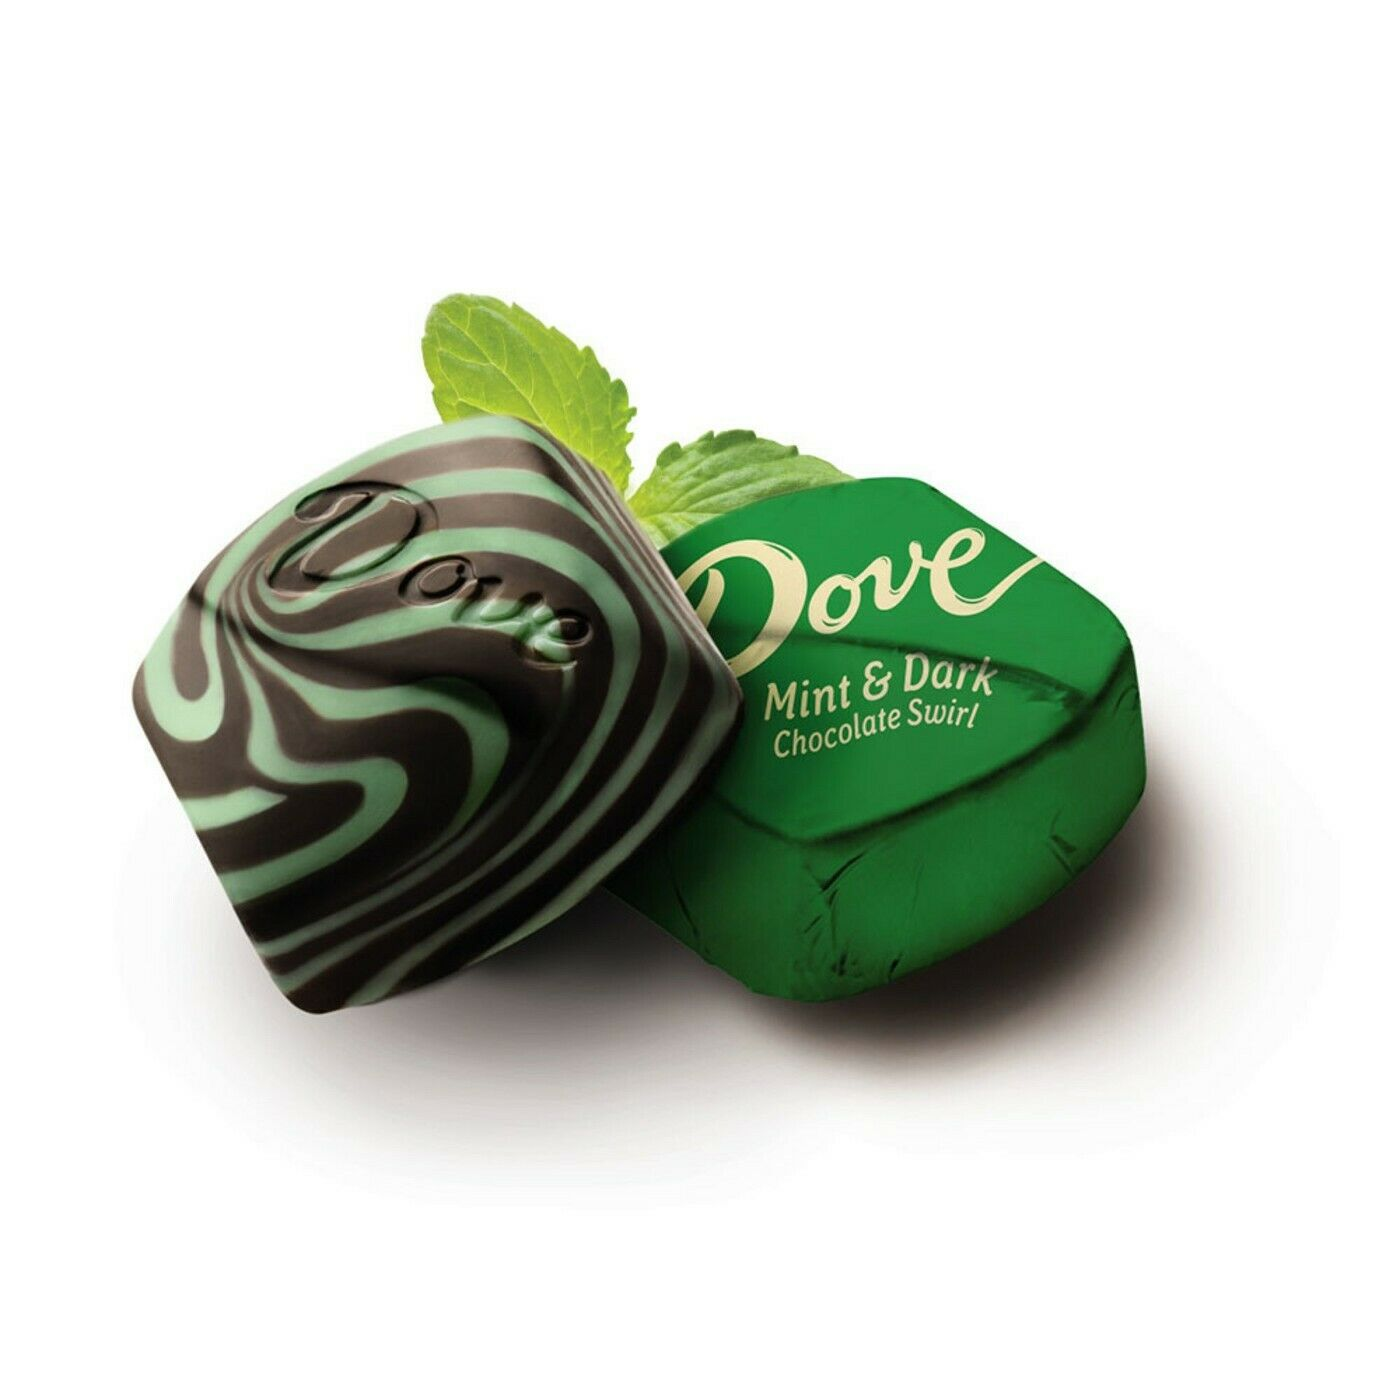 Dove Promises Dark Chocolate & Mint Swirl Candies, 7.6oz